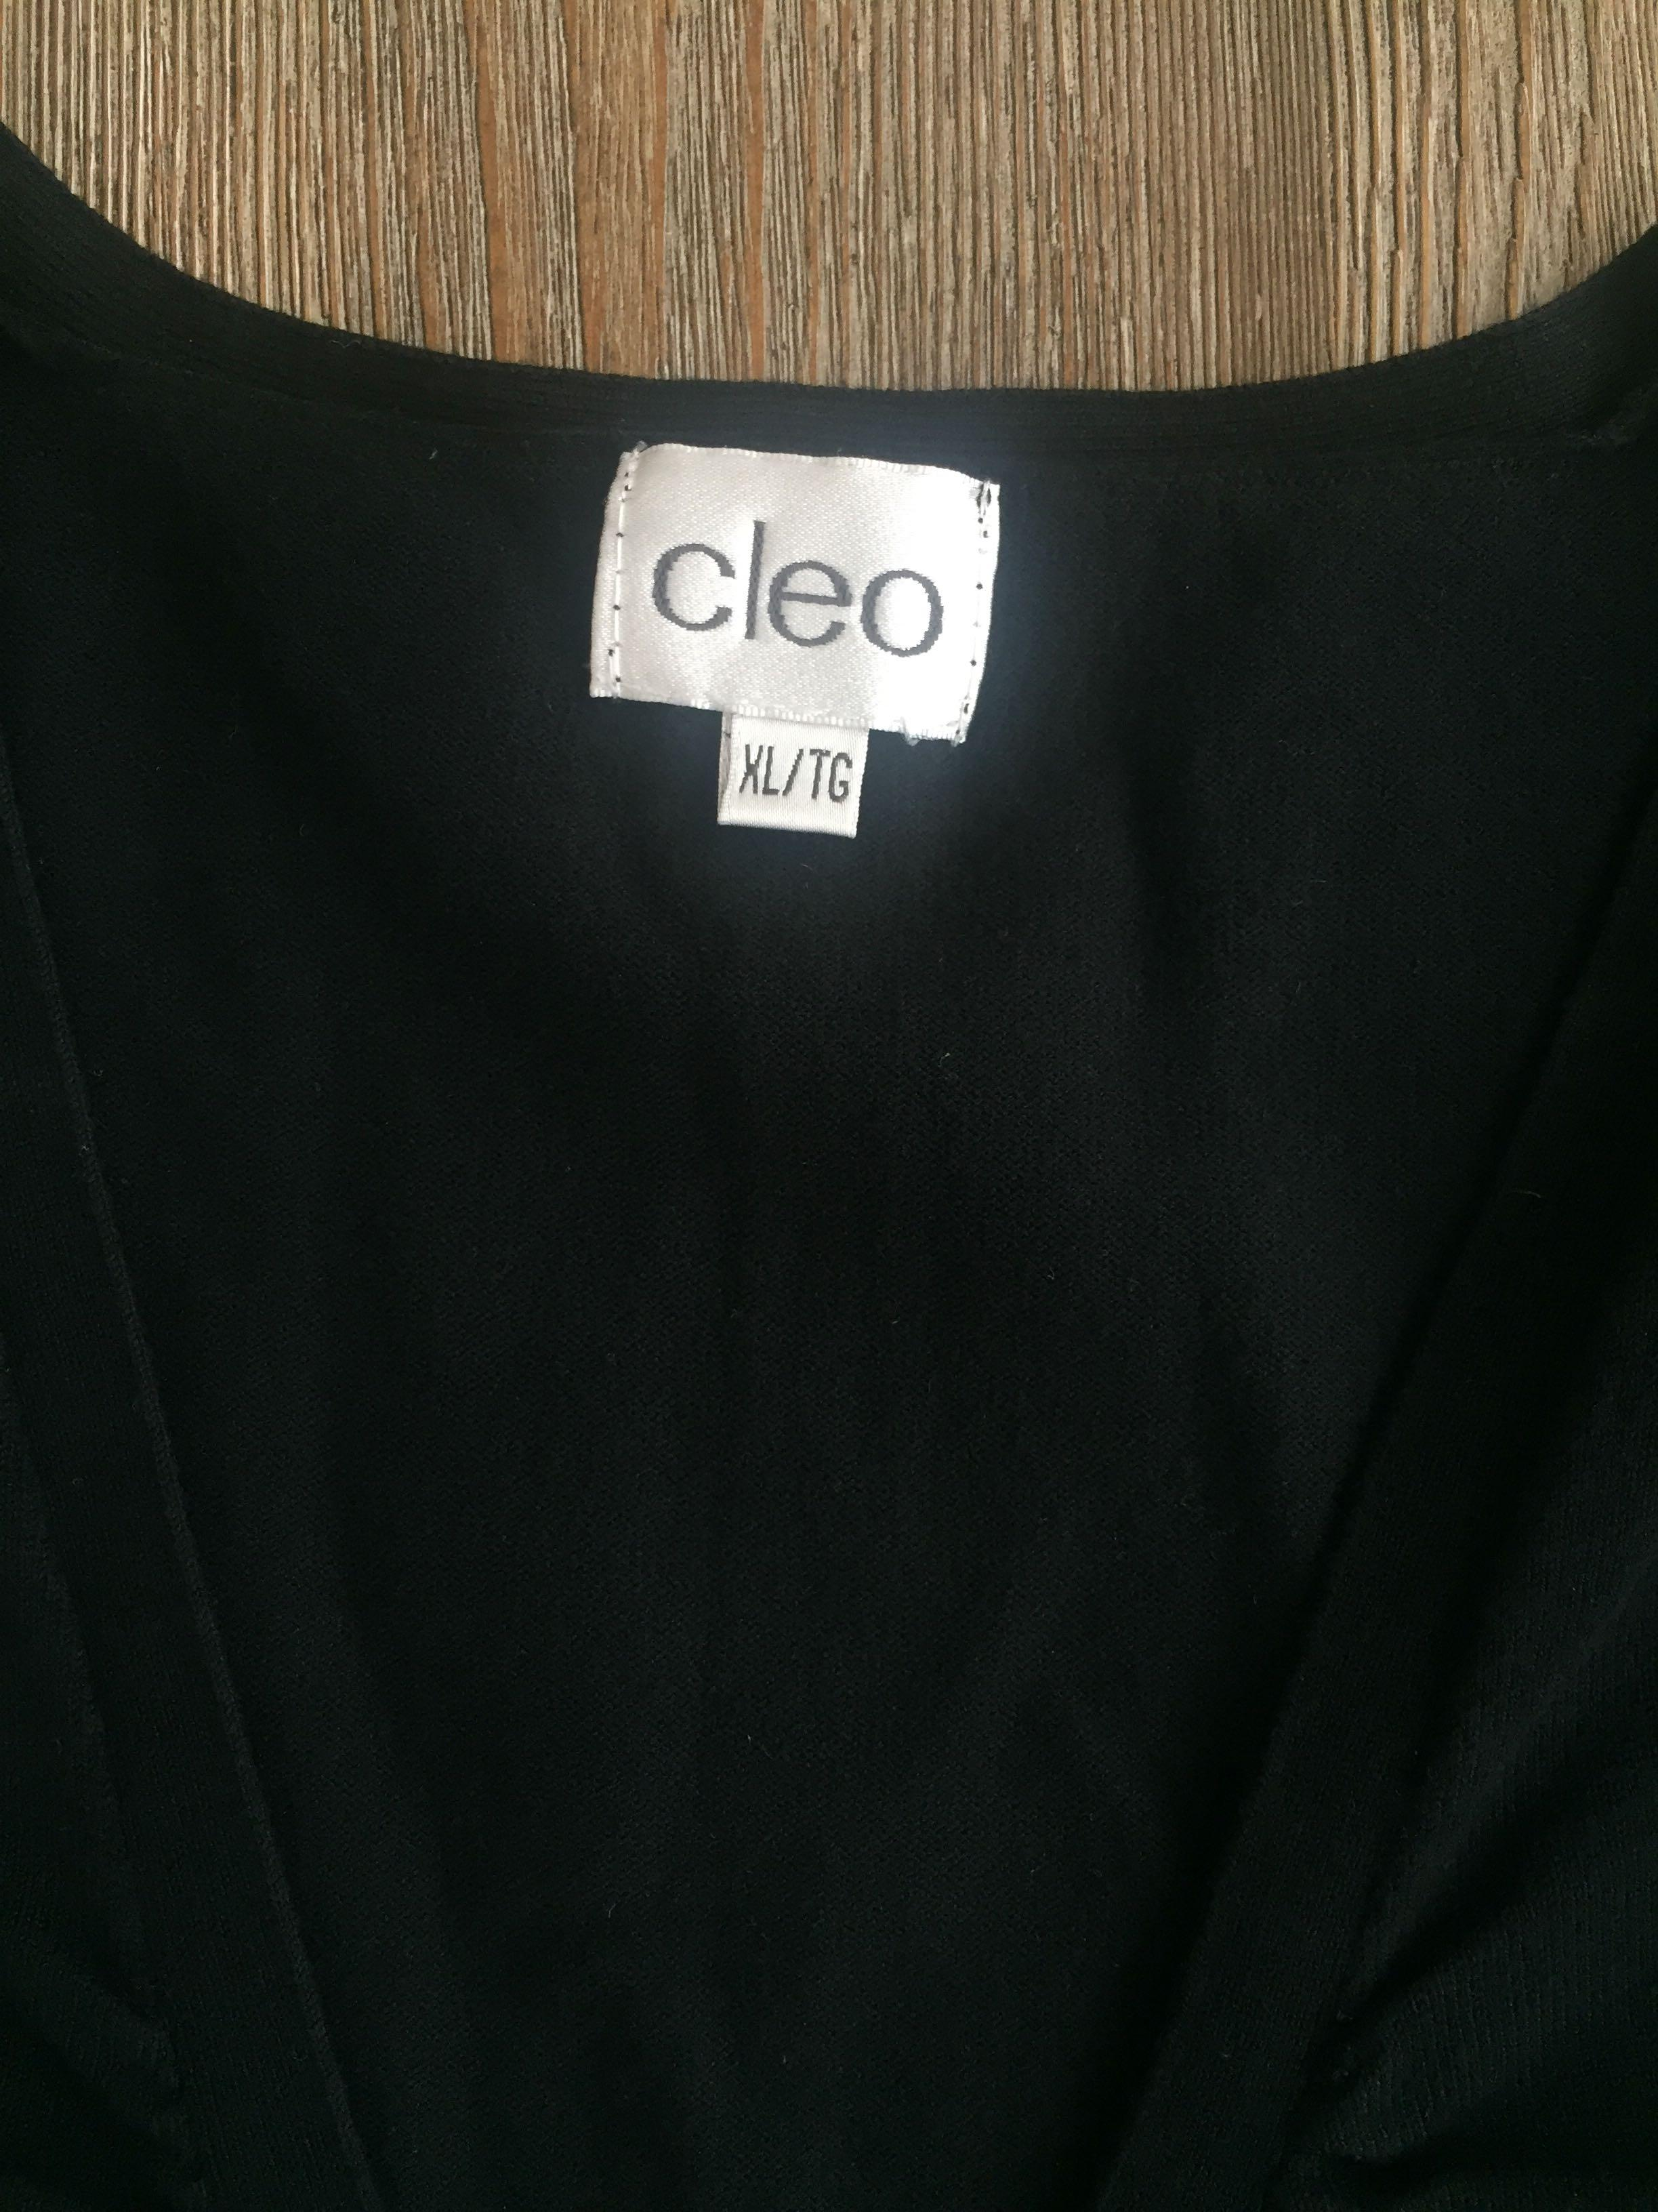 Cleo's Black Sweater Vest XL